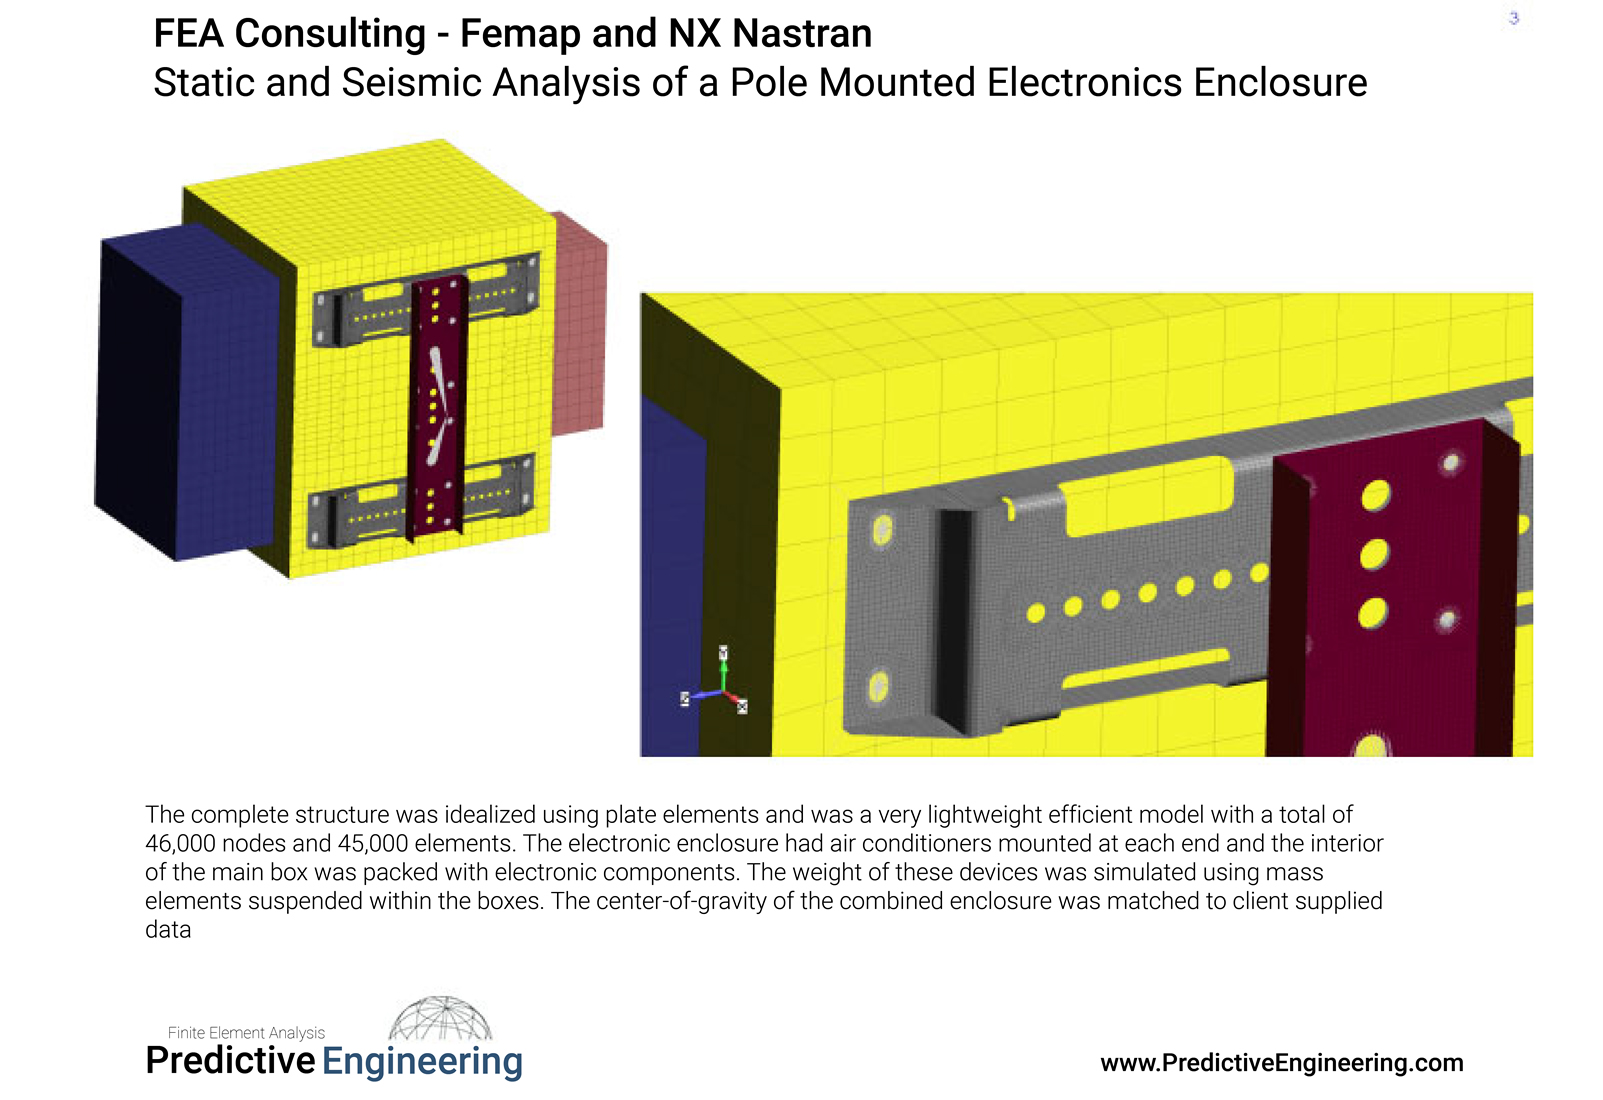 Figure 2: FEA model of pole mounted antenna enclosure used for the response spectrum simulation per GR-63-Core